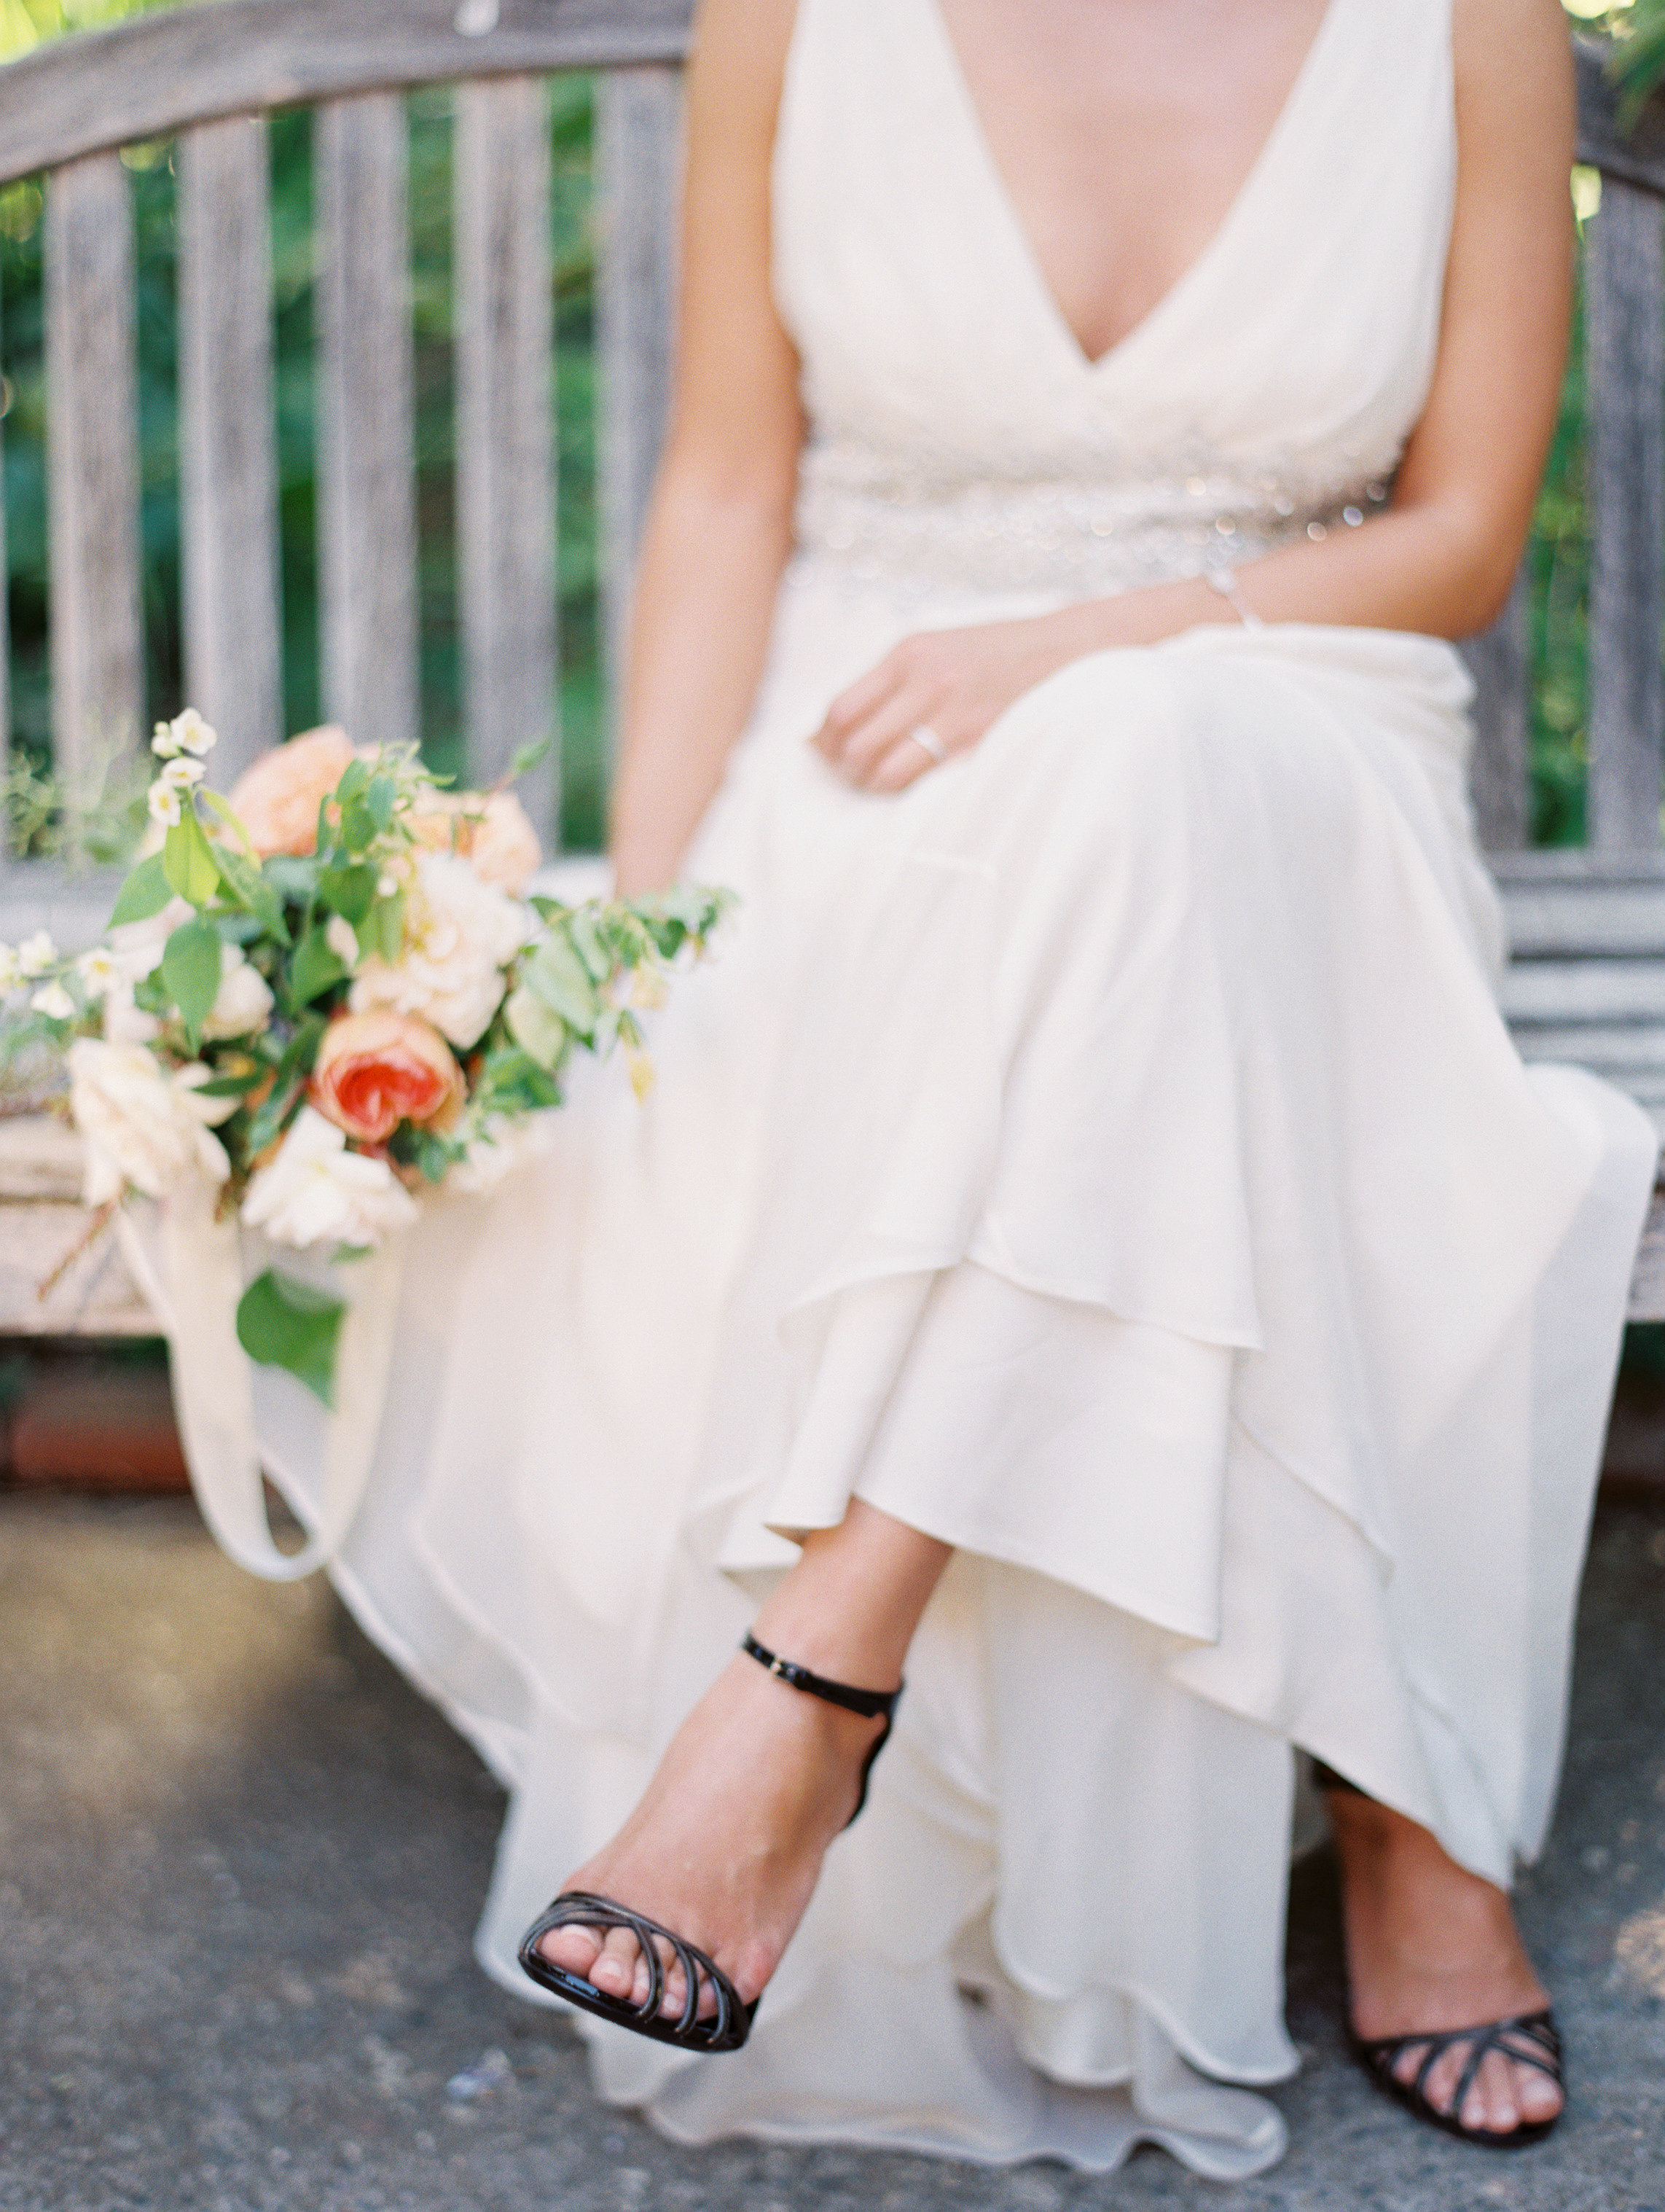 Black Shoes White Wedding Dress Ficts